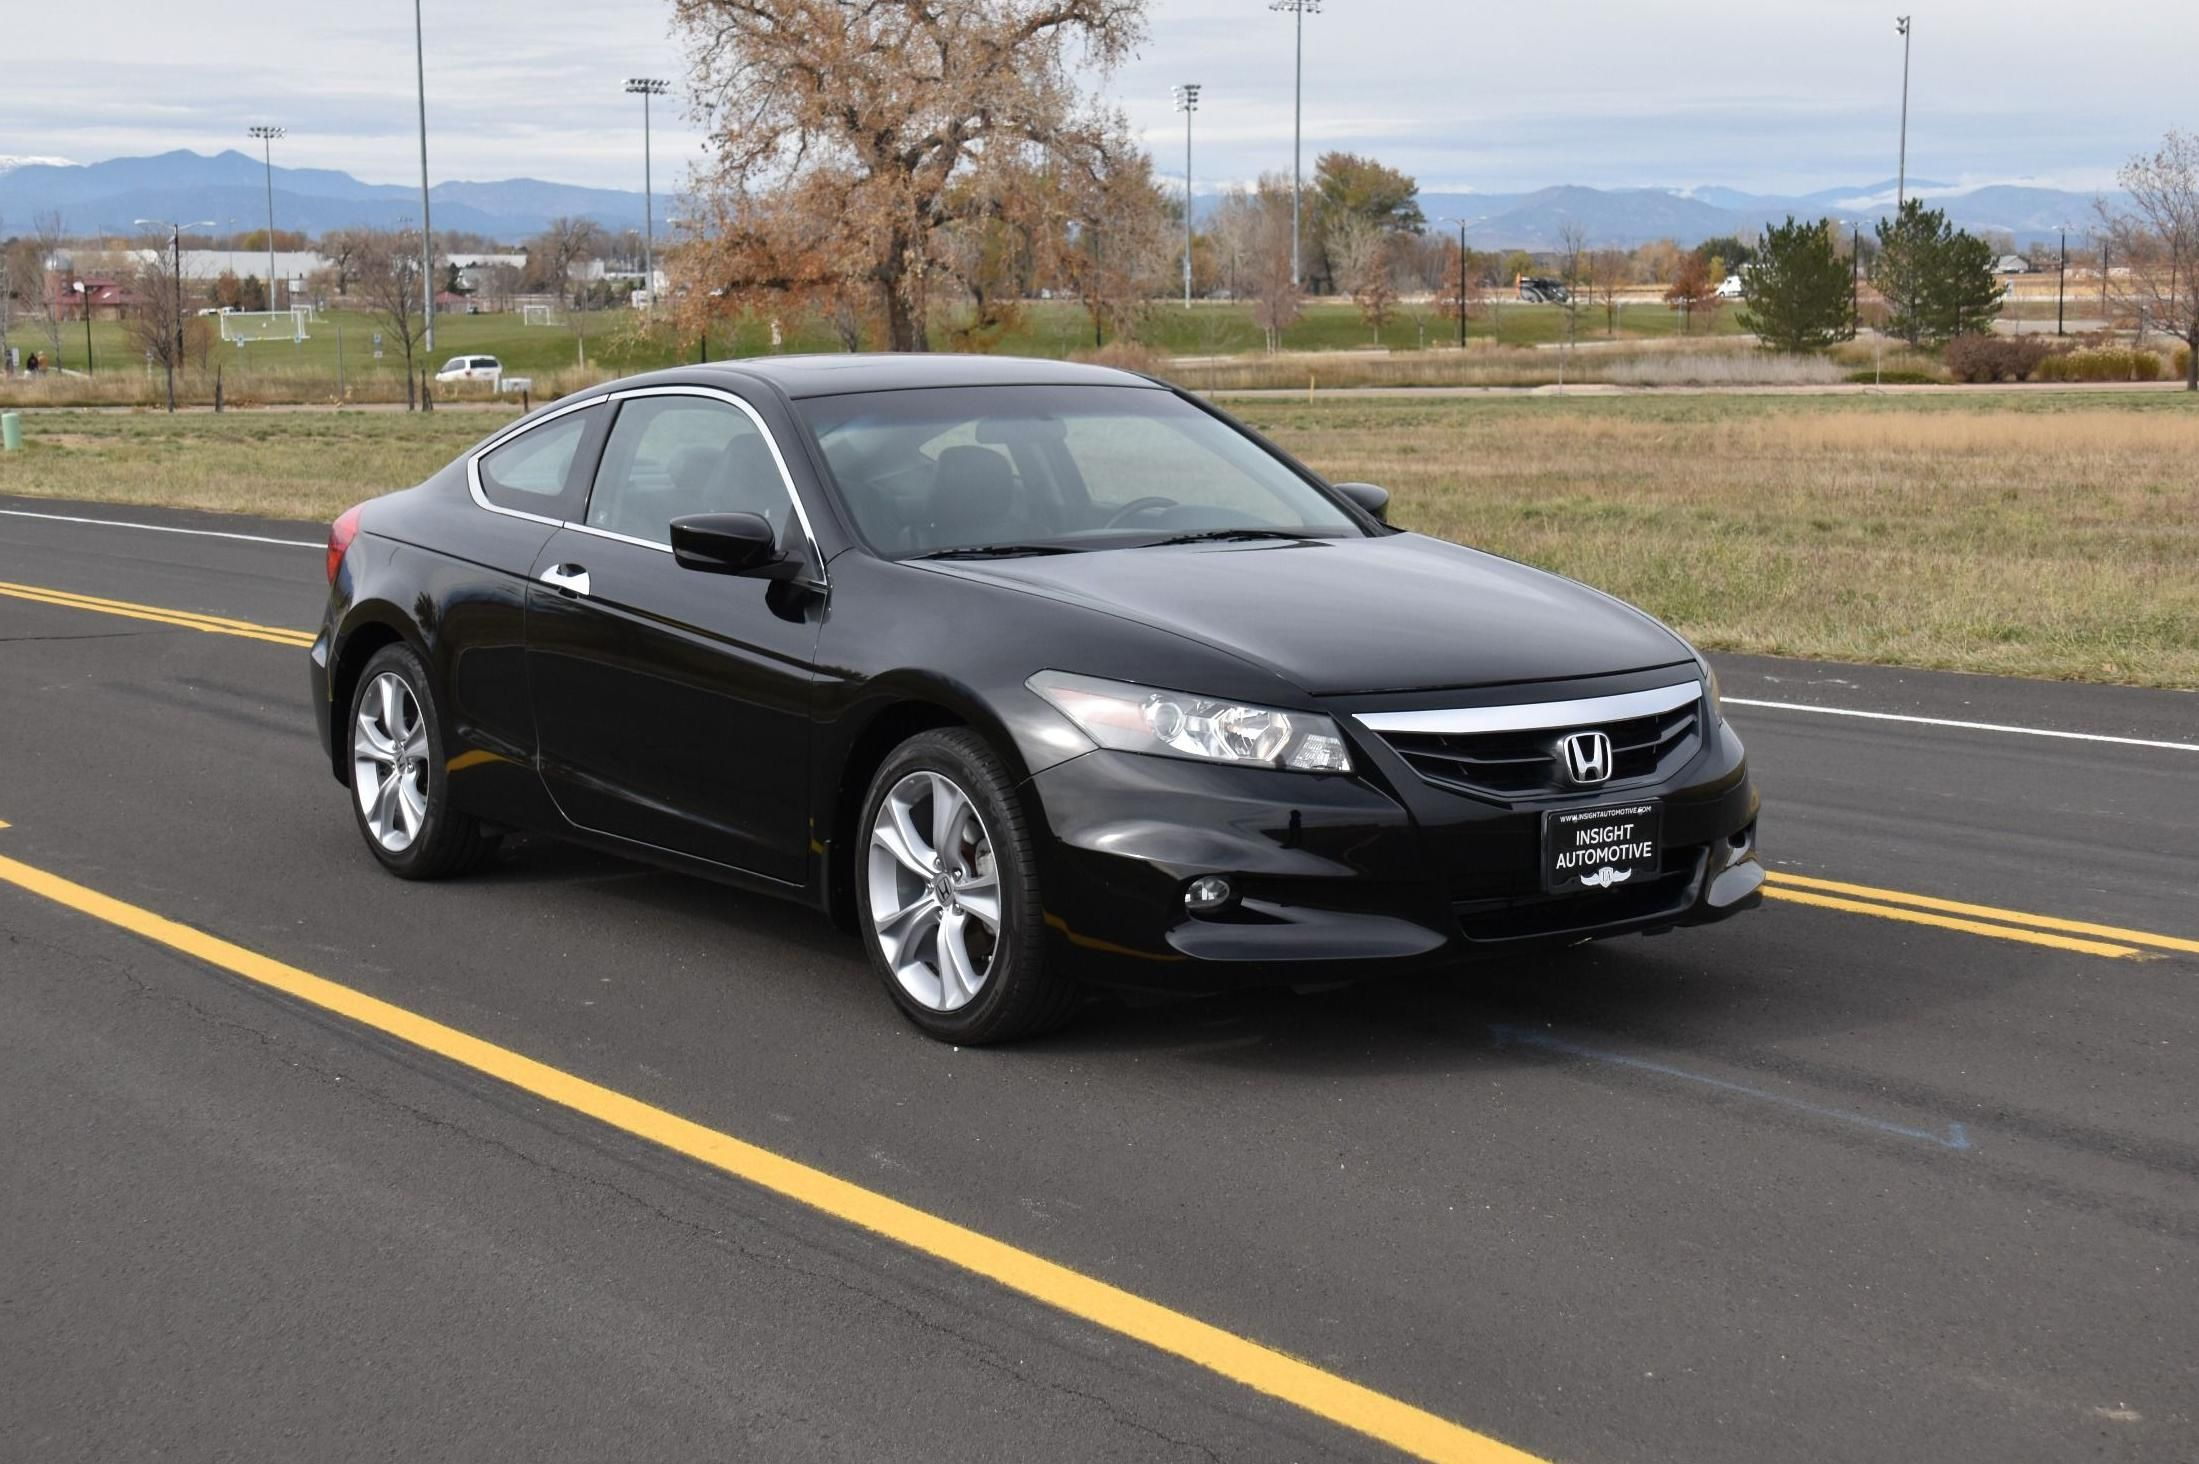 QW%2FVG%2F74%2FI9I91MBPURHRMDXV Interesting Info About 2013 Honda Accord Exl with Terrific Pictures Cars Review